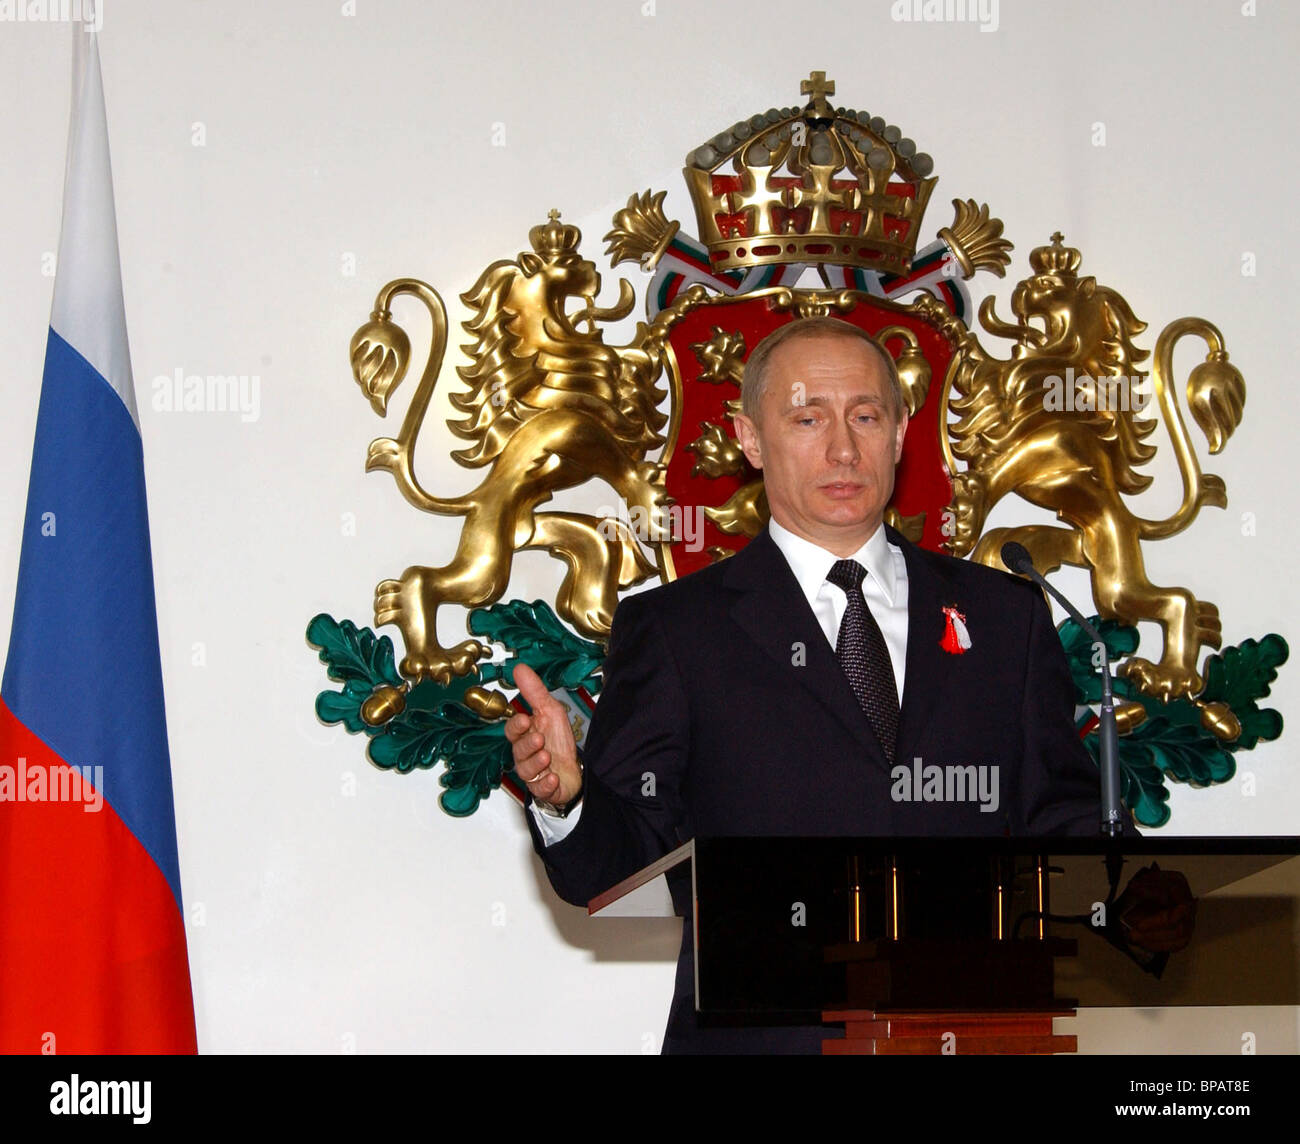 Putin gives press conference in Sofia - Stock Image